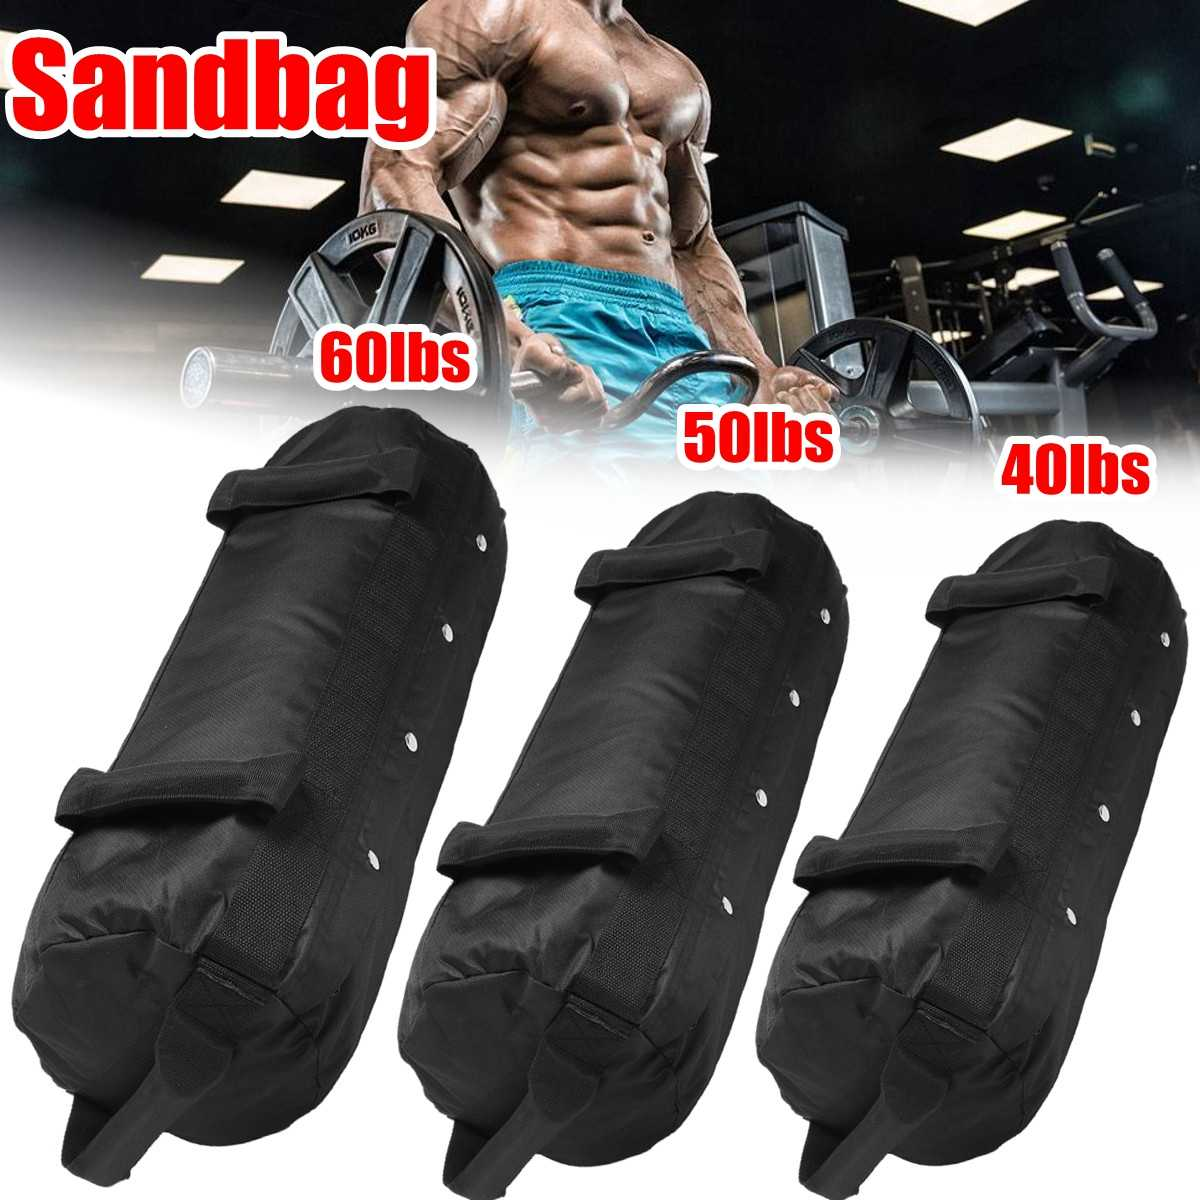 Weight Bags Weightlifting Sandbag Heavy Sand Bag MMA Boxing Crossfit  Military Power Training Body Shaper Fitness Equipment